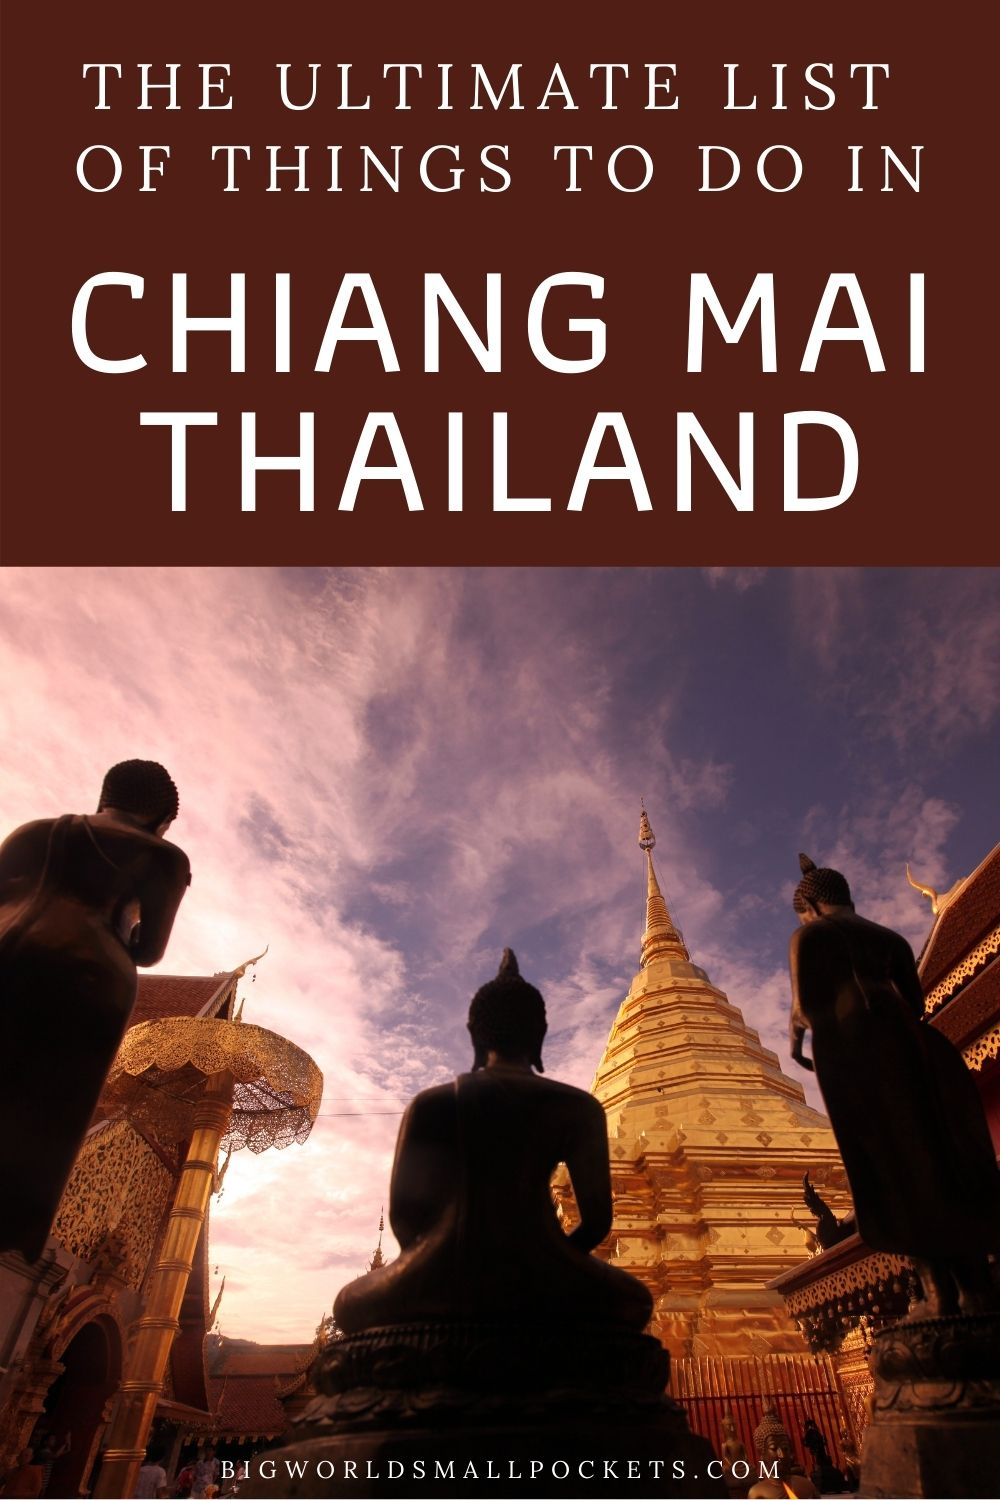 The Ultimate List of Things to Do in Chiang Mai, Thailand